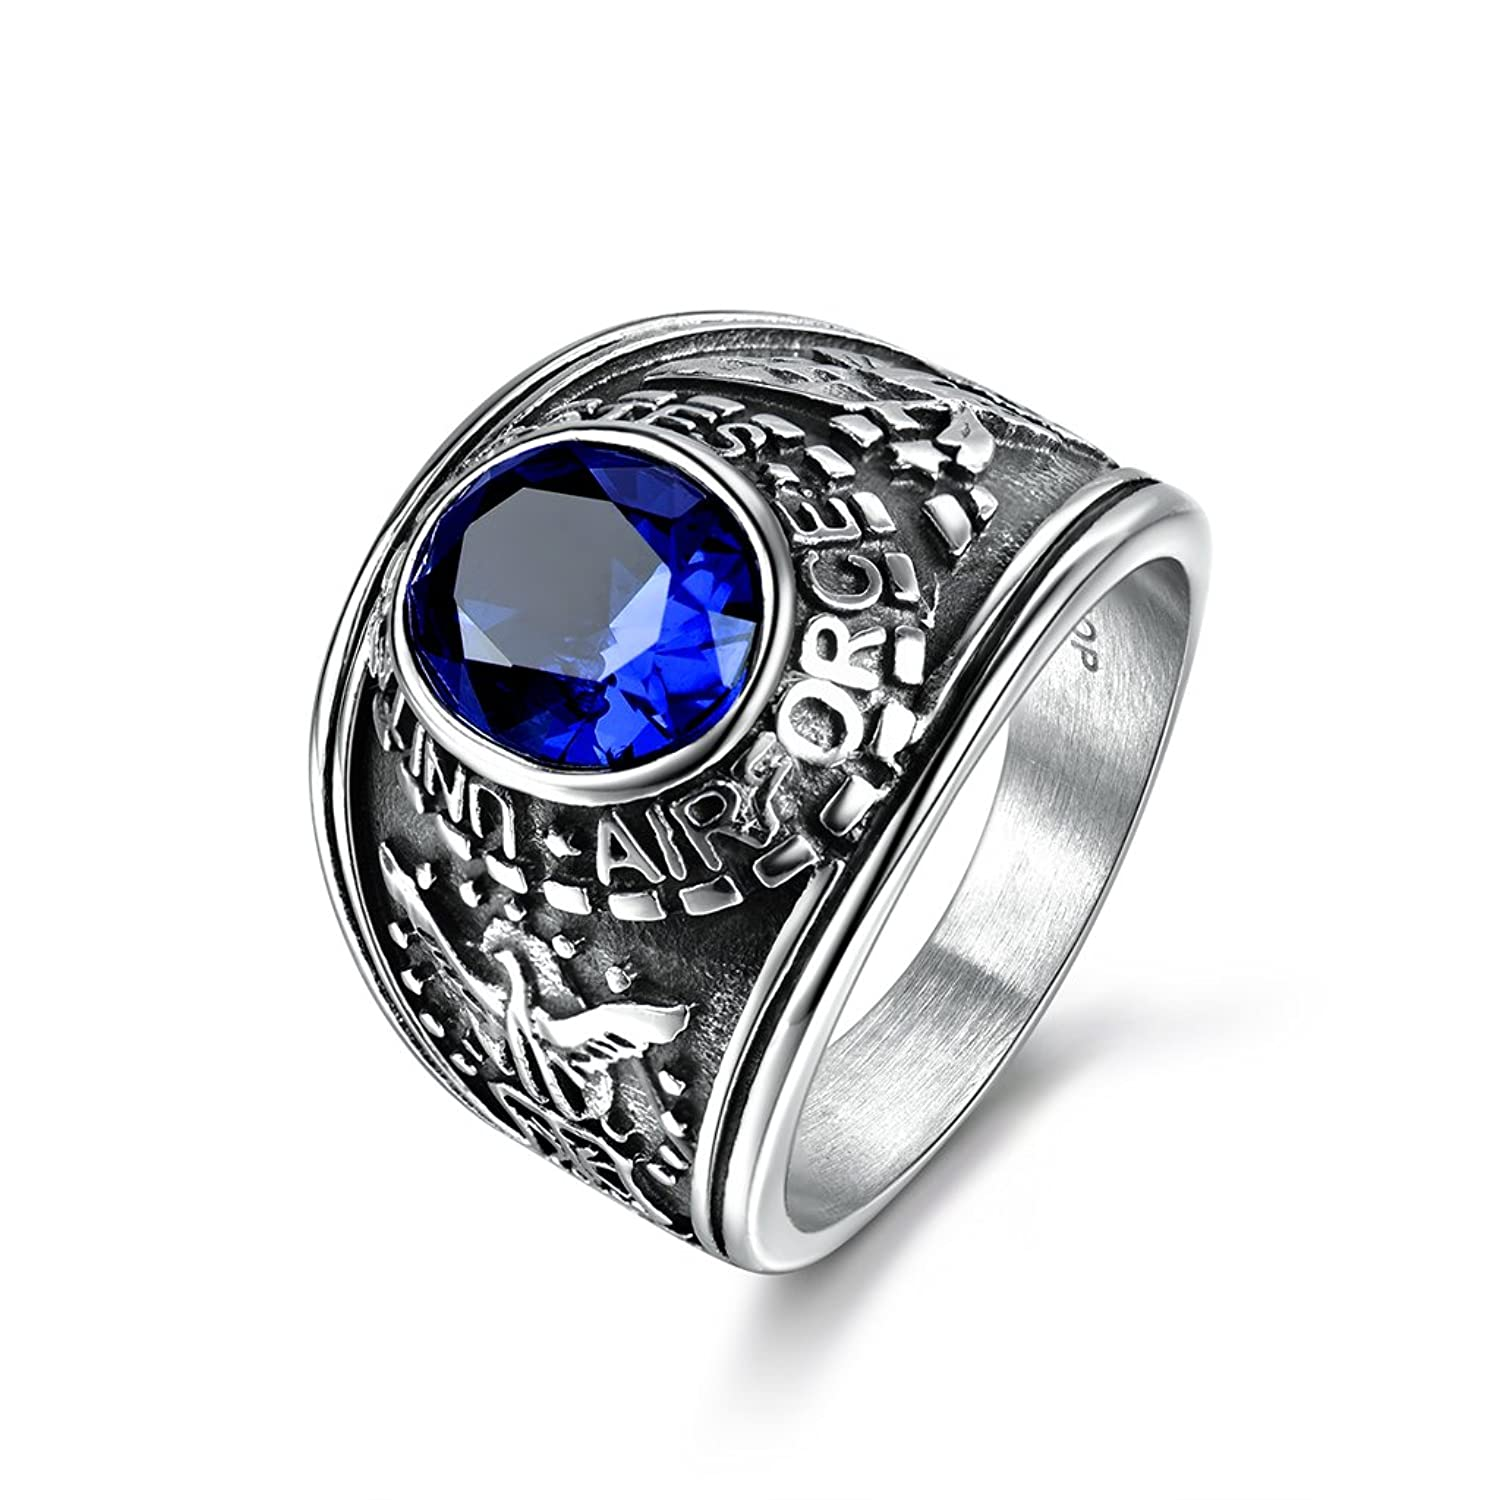 MASOP Jewelry Men's Stainless Steel United State Airforce Wide Identify Ring Blue Sapphire Color Stone